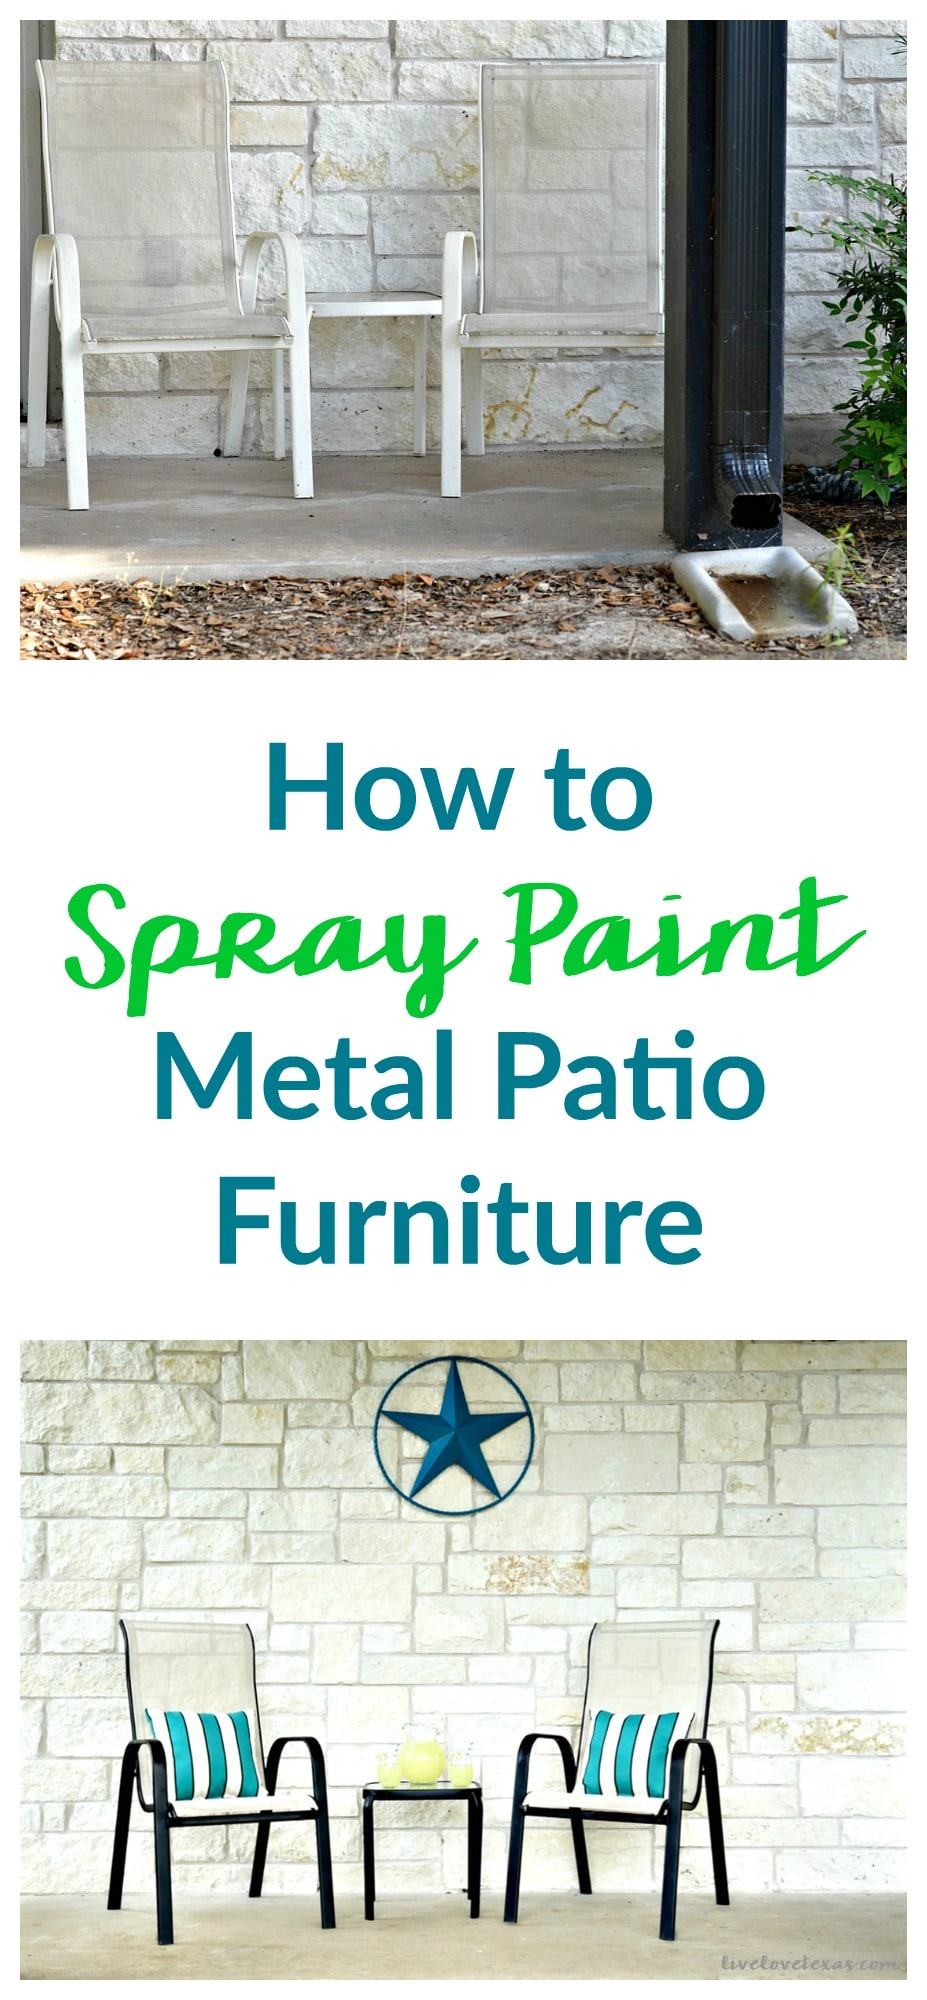 How to spray paint metal patio furniture Spray painting metal patio furniture